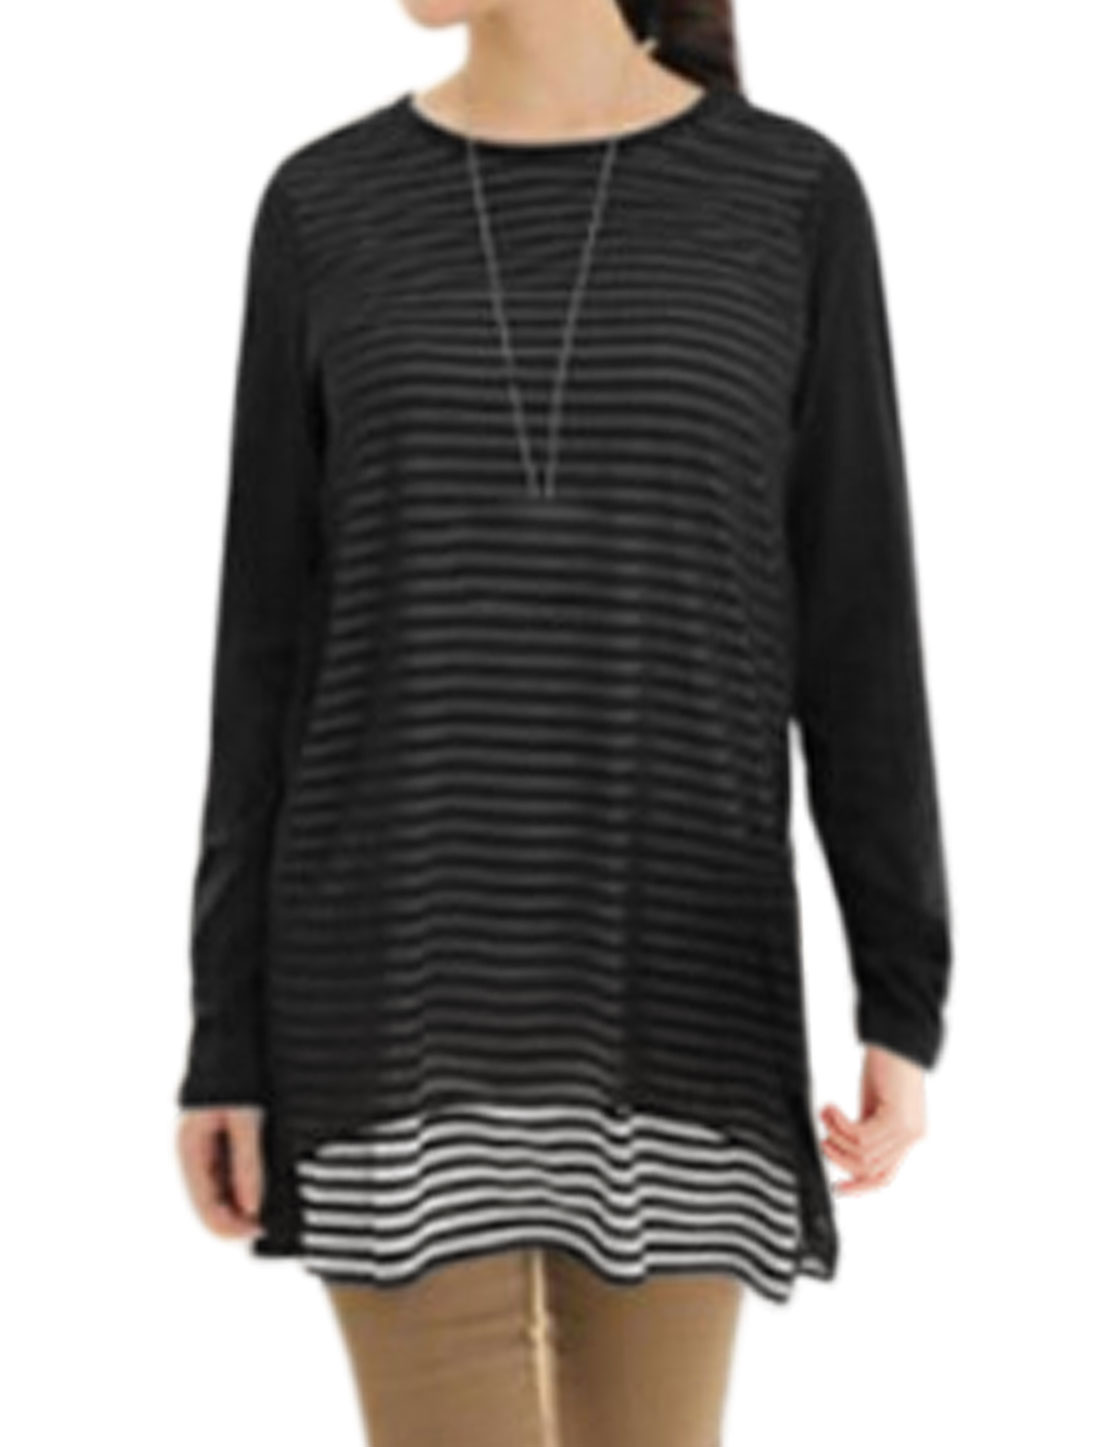 Women Long Sleeves Chiffon Panel Layered Stripes Prints Tunic Tee Black M